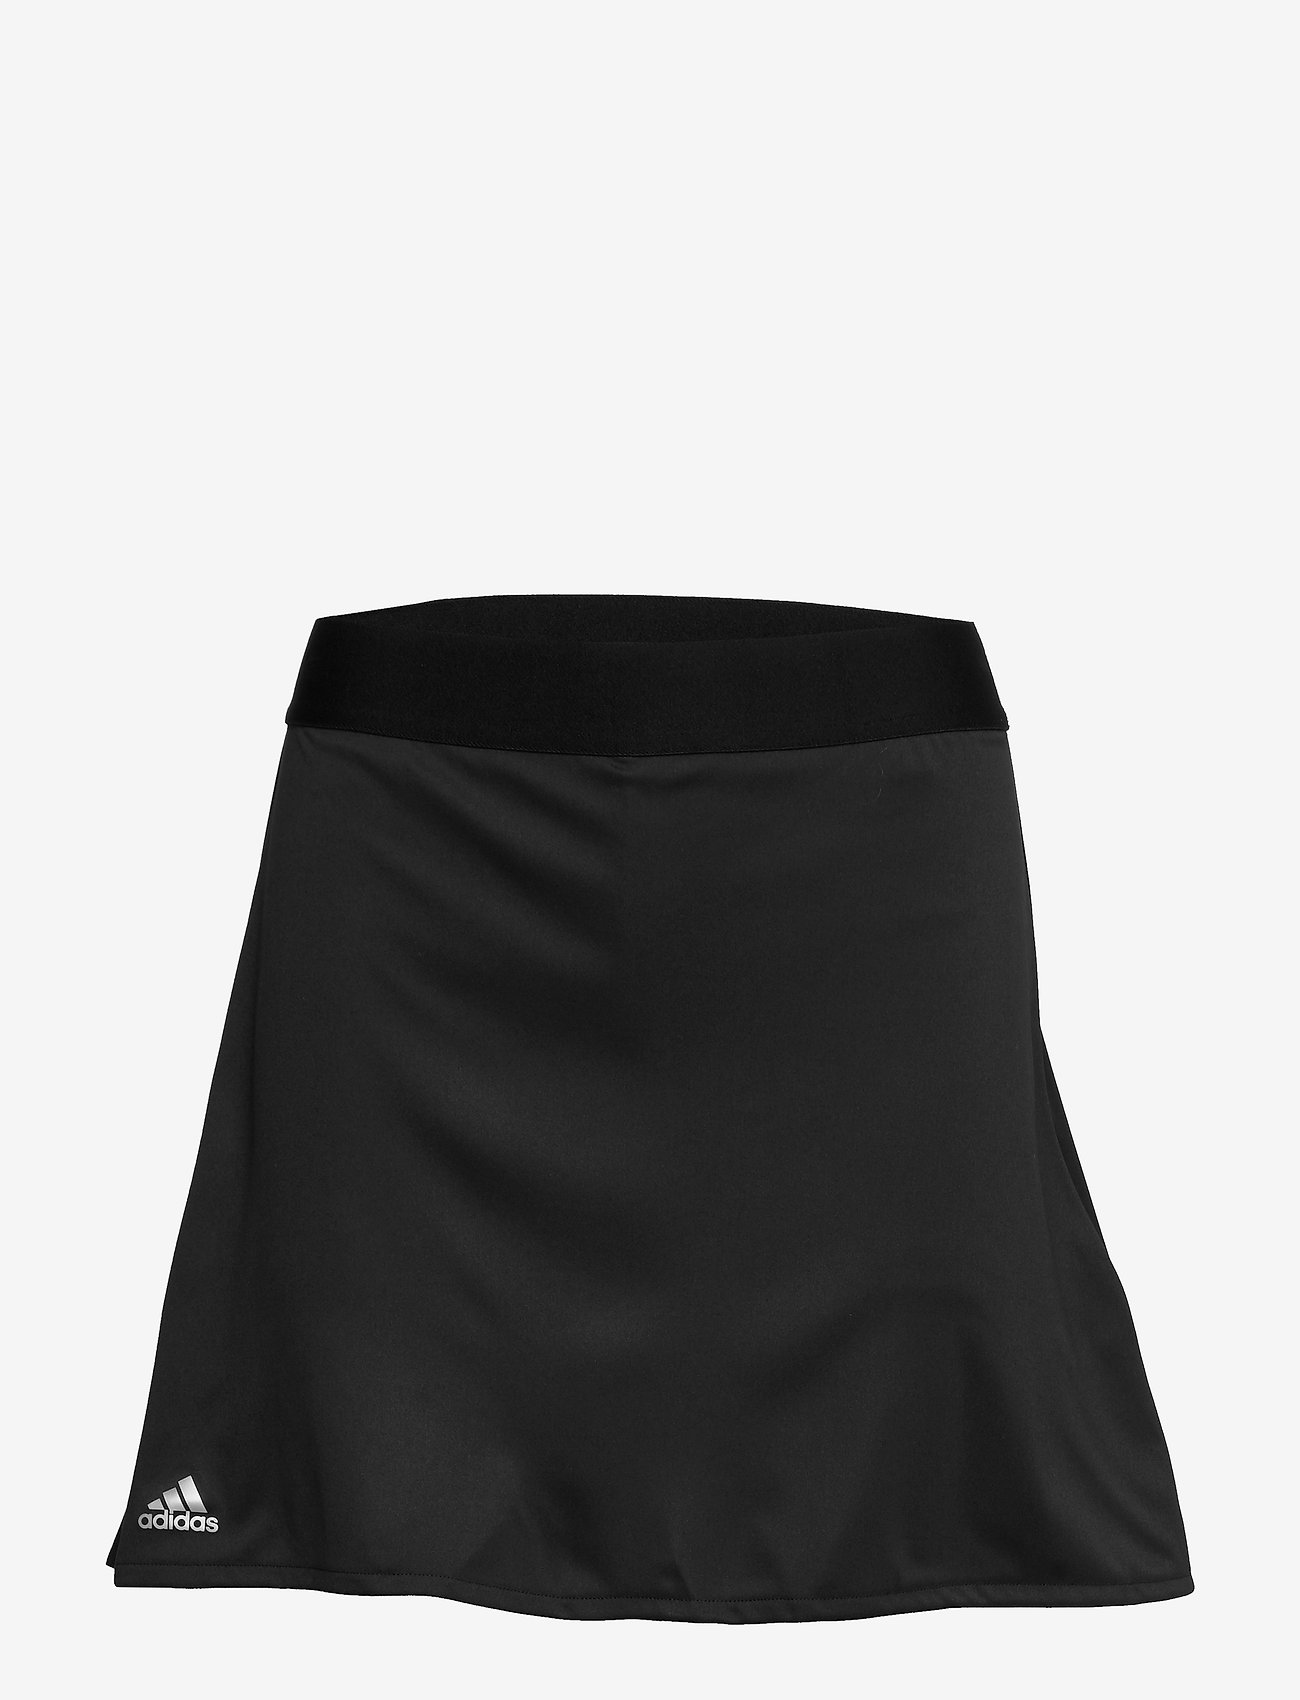 Club Long Skirt (Black) (479 kr) - adidas Tennis